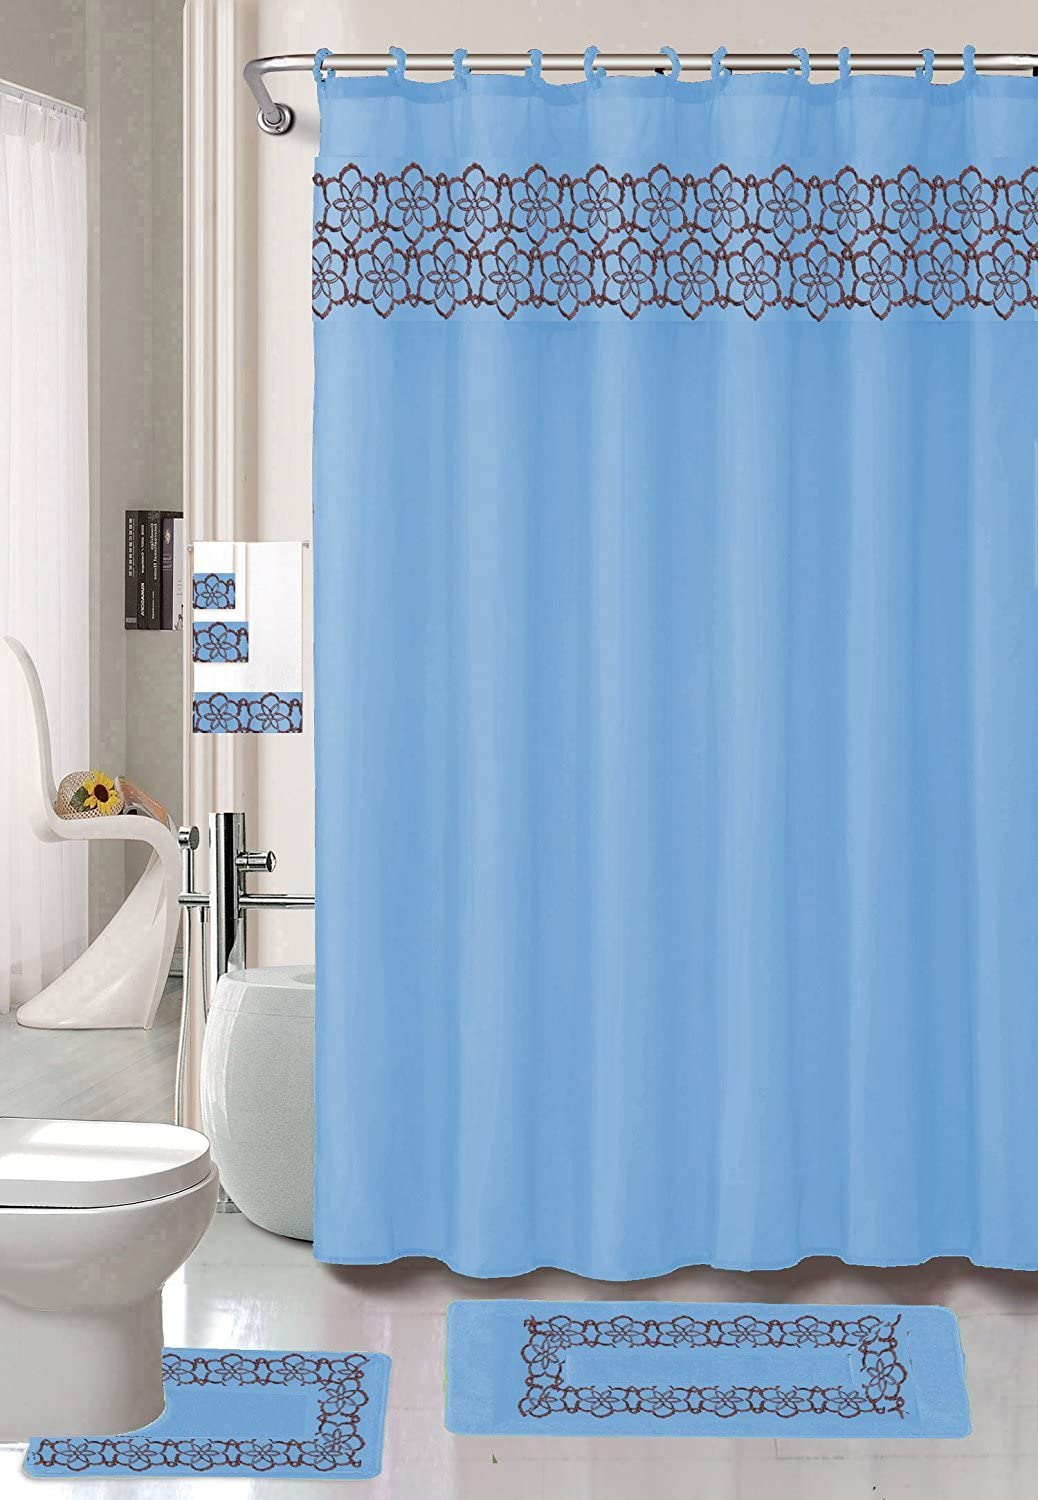 Embroidery 18-Piece Bathroom Accessory Set Floral Bath Mats Shower Curtain & Towels - Light Blue